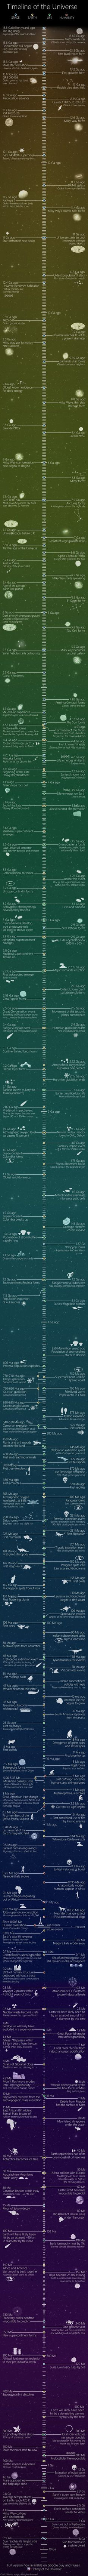 Designed byMartin Vargic, theTimeline of the Universeallows viewersto traverse billions of years of time and explore significantastronomical events... from the Big Bang all the way to the death of our planet and, ultimately, our solar system. The full version, available within an app, extends the journey to the heat death of the universe. Note that…